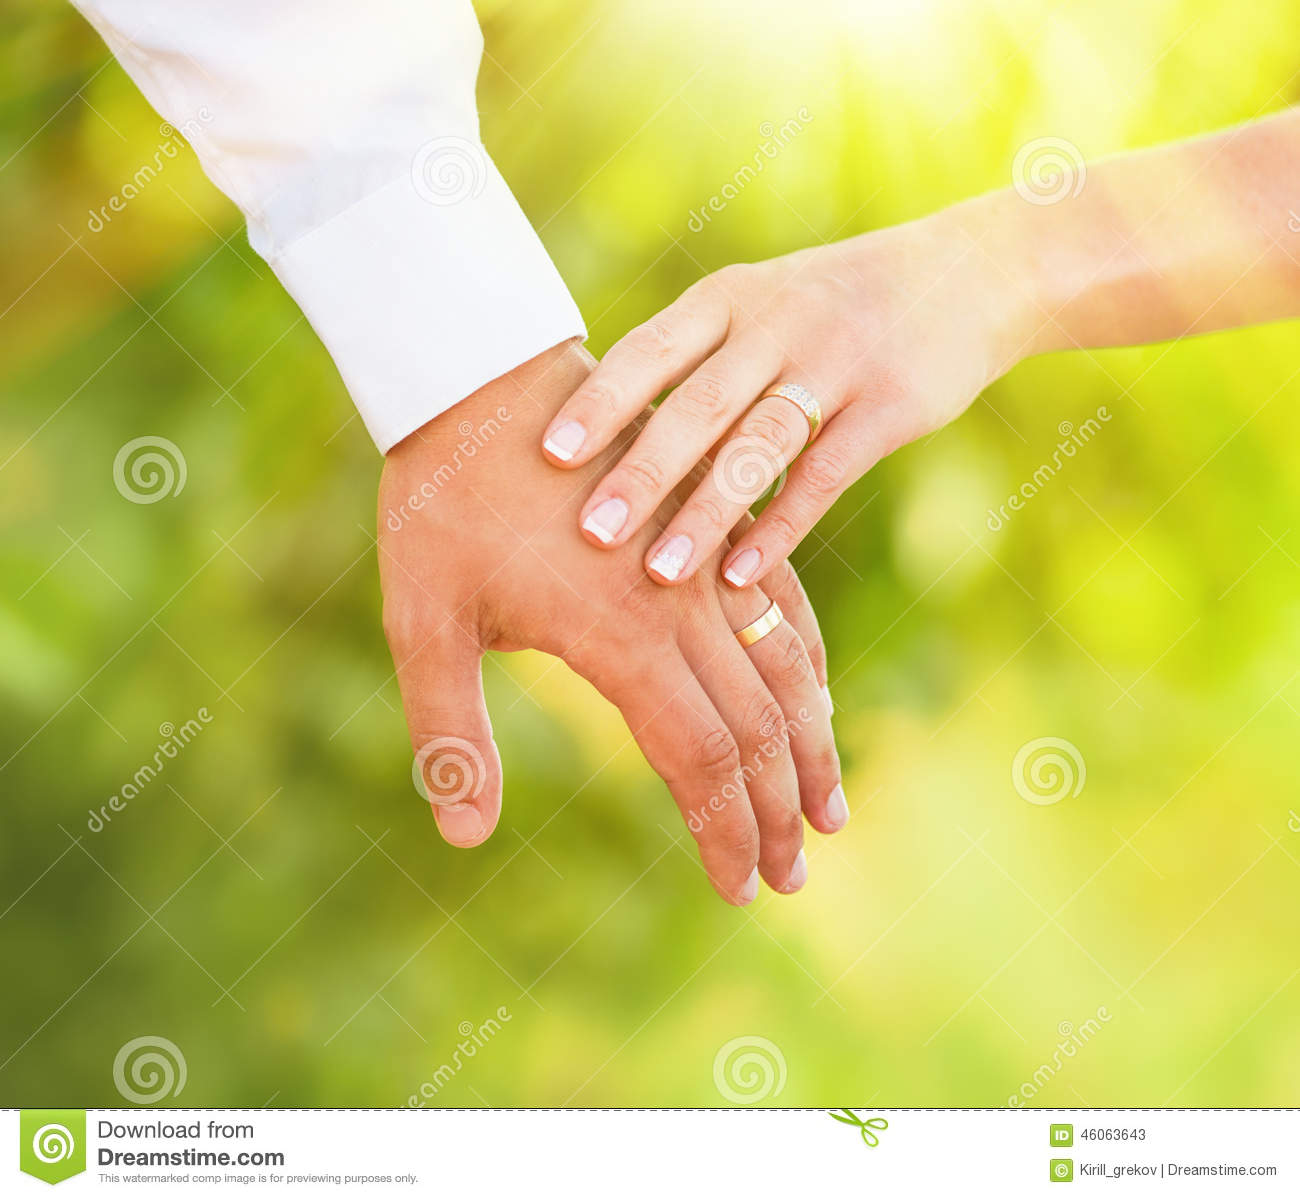 Hand of married people